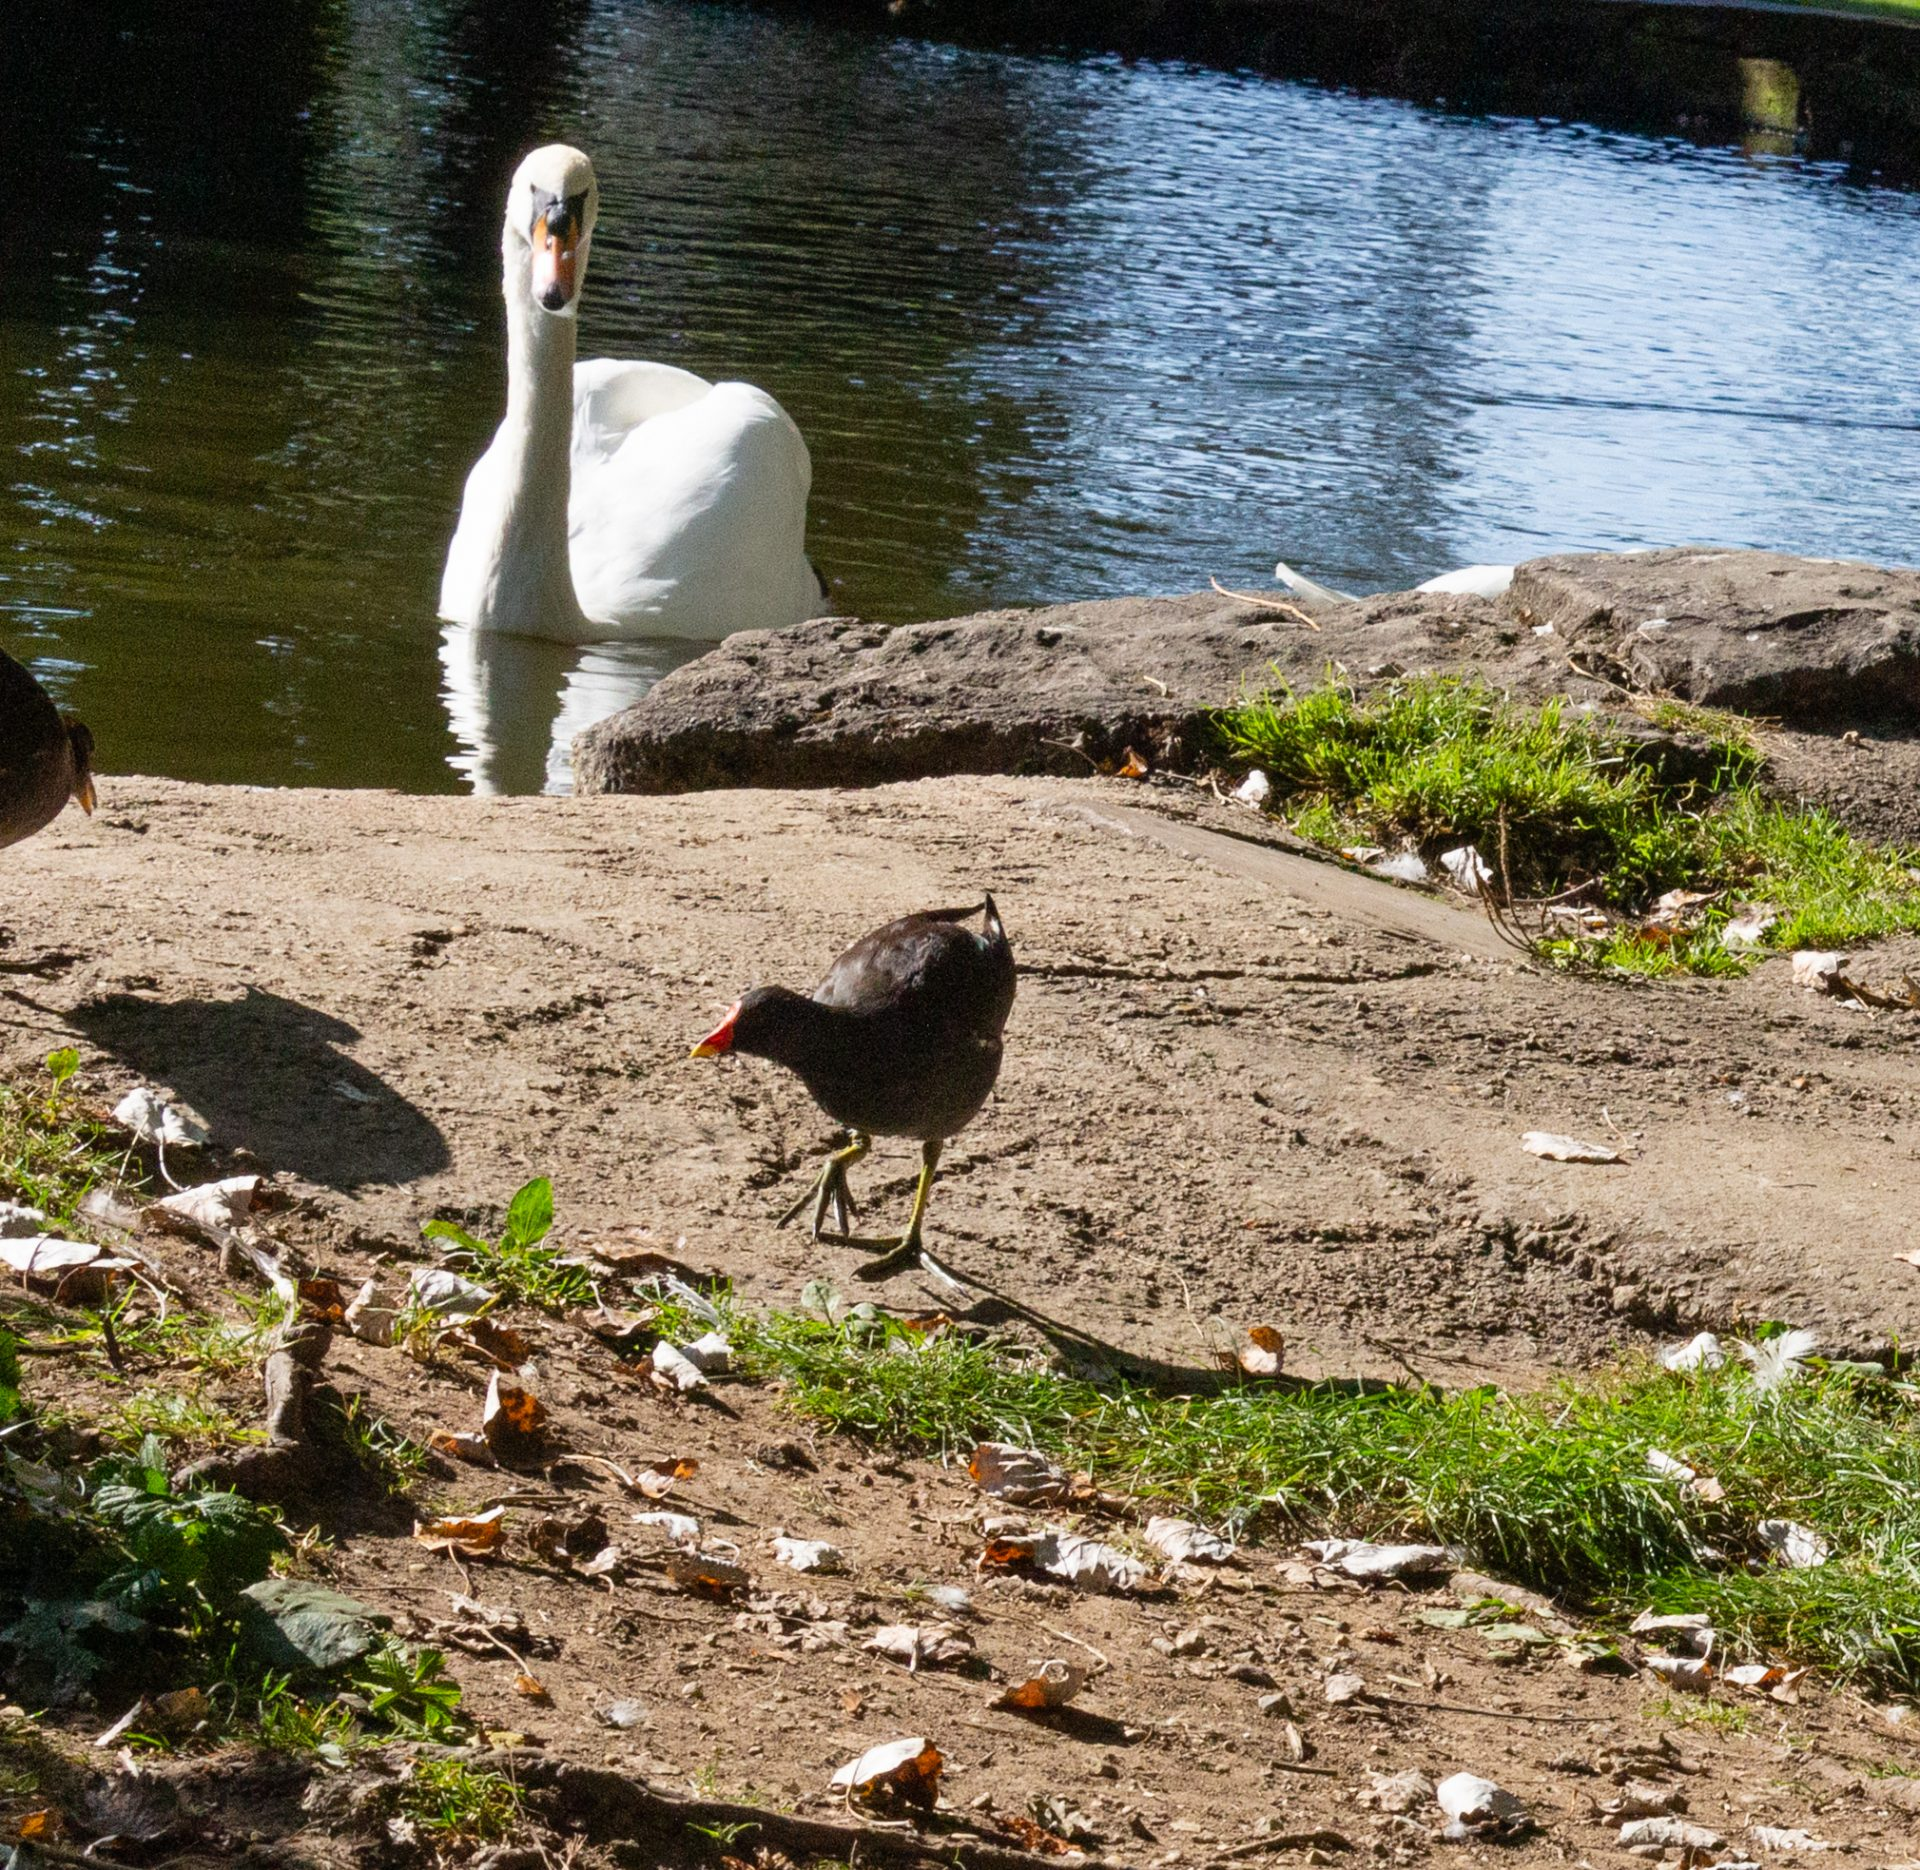 A swan in pittville park